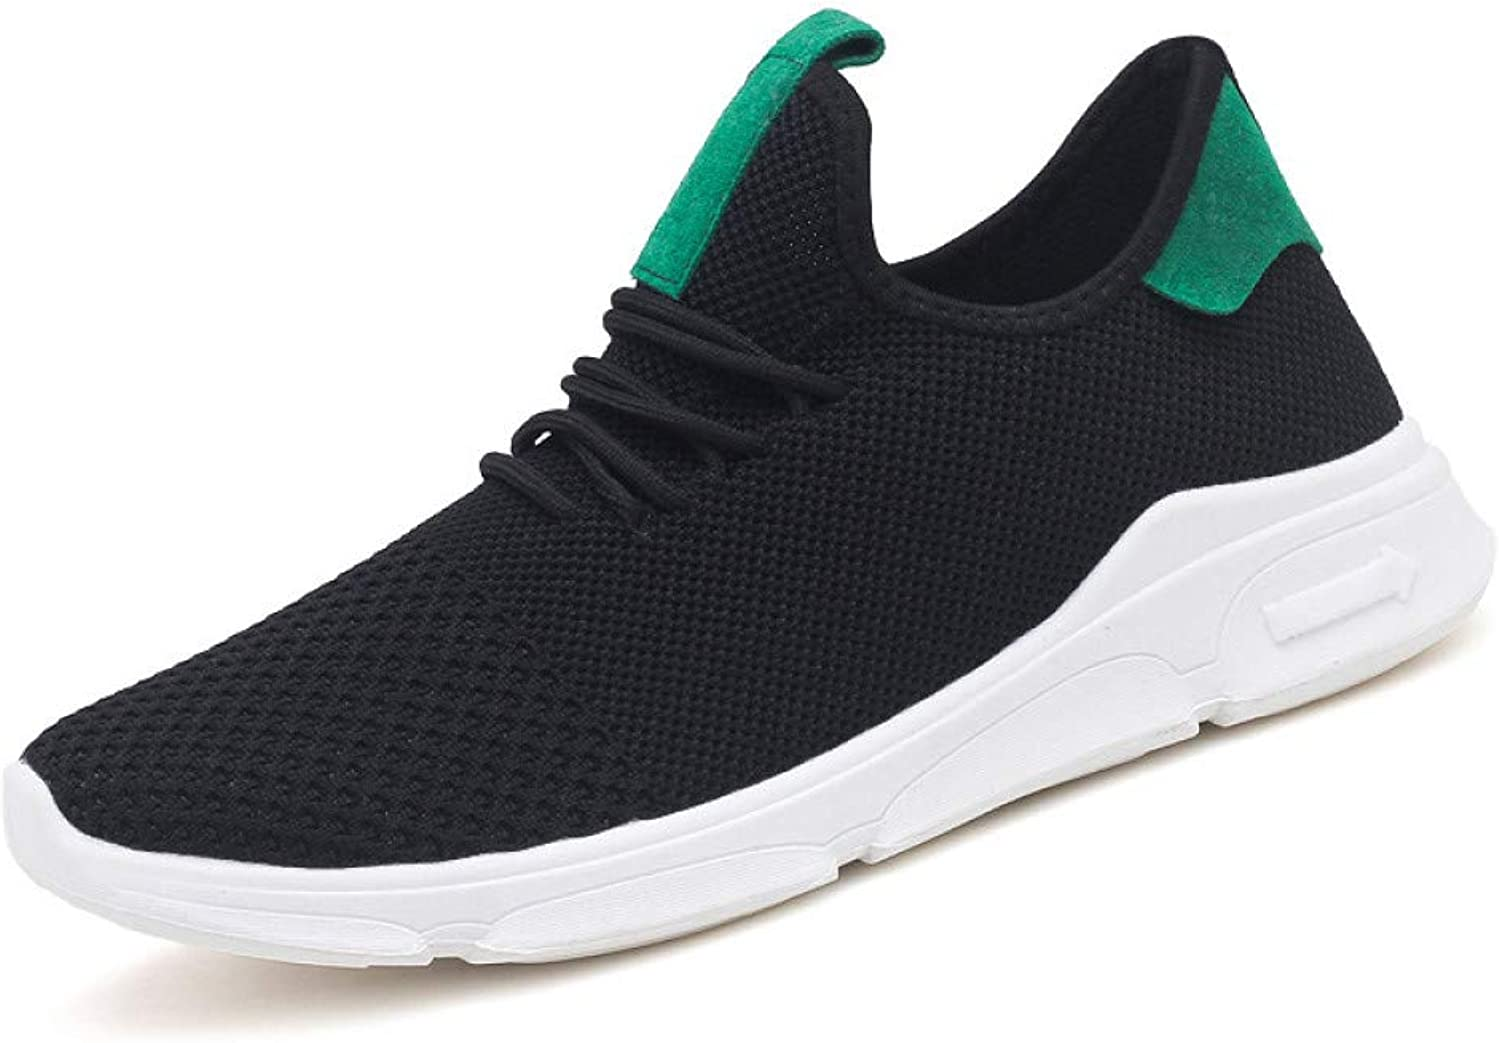 42700b1ce83ec Hasag New Men's shoes Breathable White Casual shoes Running Mesh ...